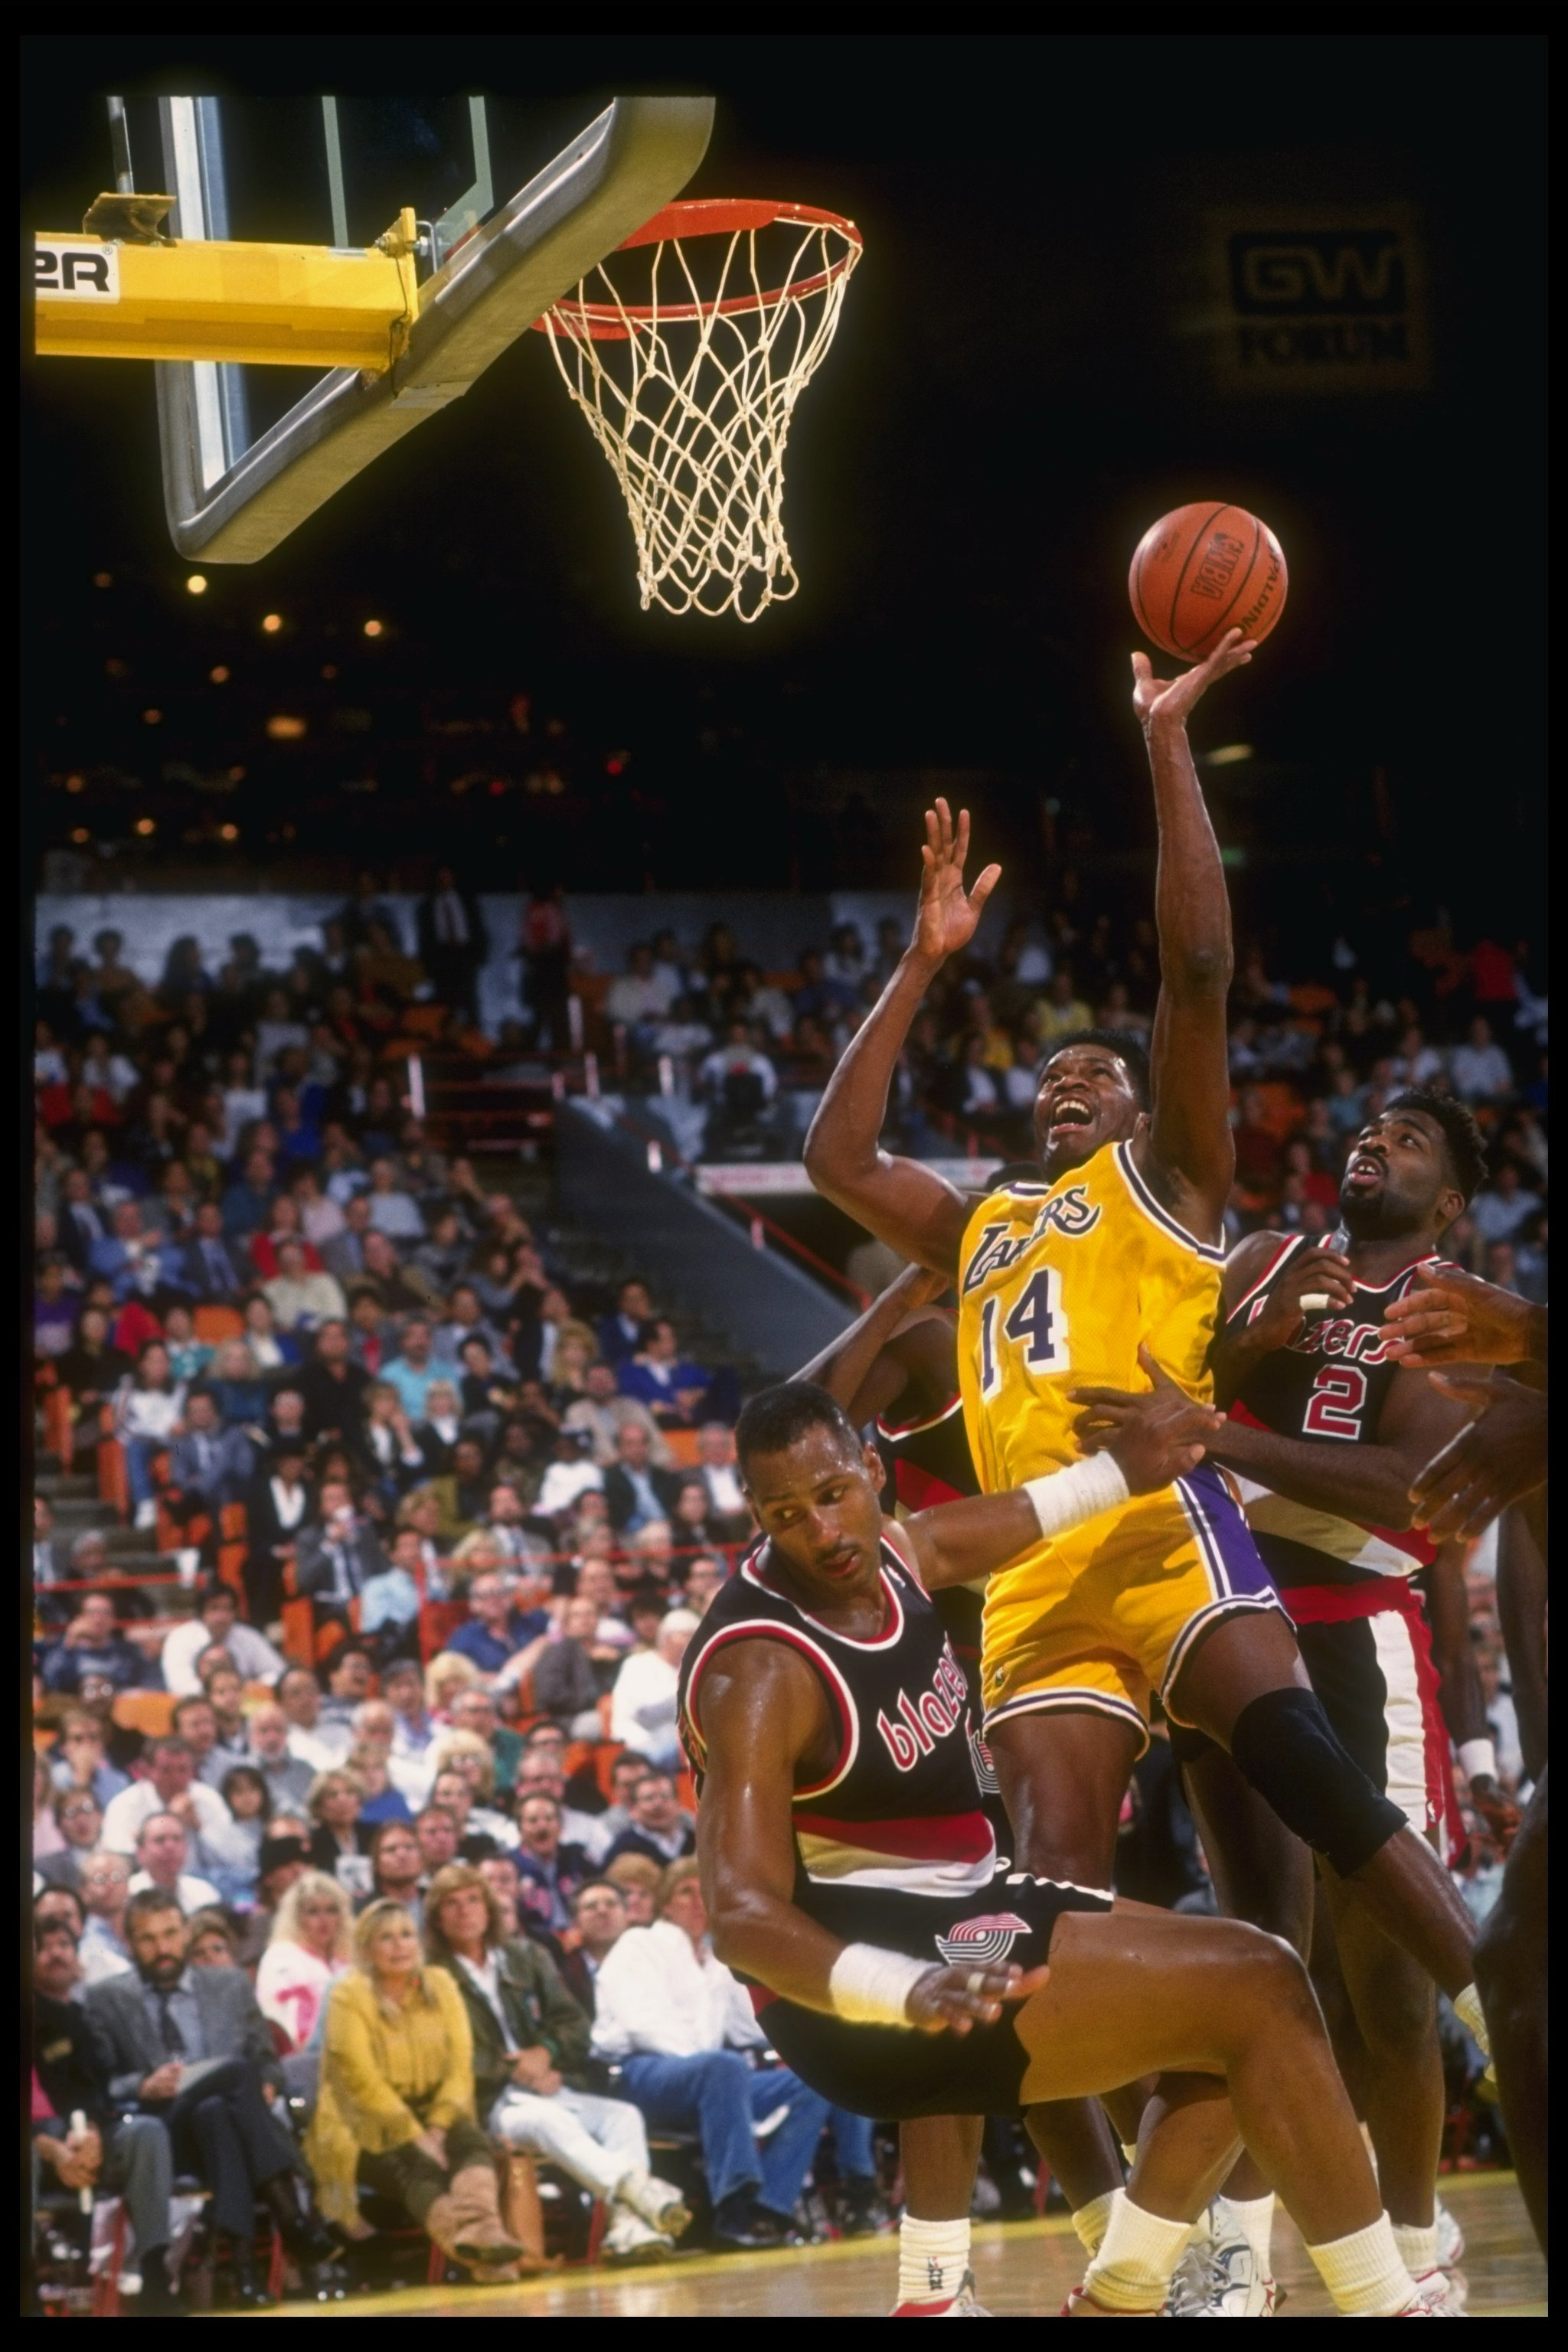 1990-1991:  Forward Sam Perkins of the Los Angeles Lakers goes up for two during a game against the Portland Trail Blazers at the Rose Garden in Portland, Oregon. Mandatory Credit: Stephen Dunn  /Allsport Mandatory Credit: Stephen Dunn  /Allsport